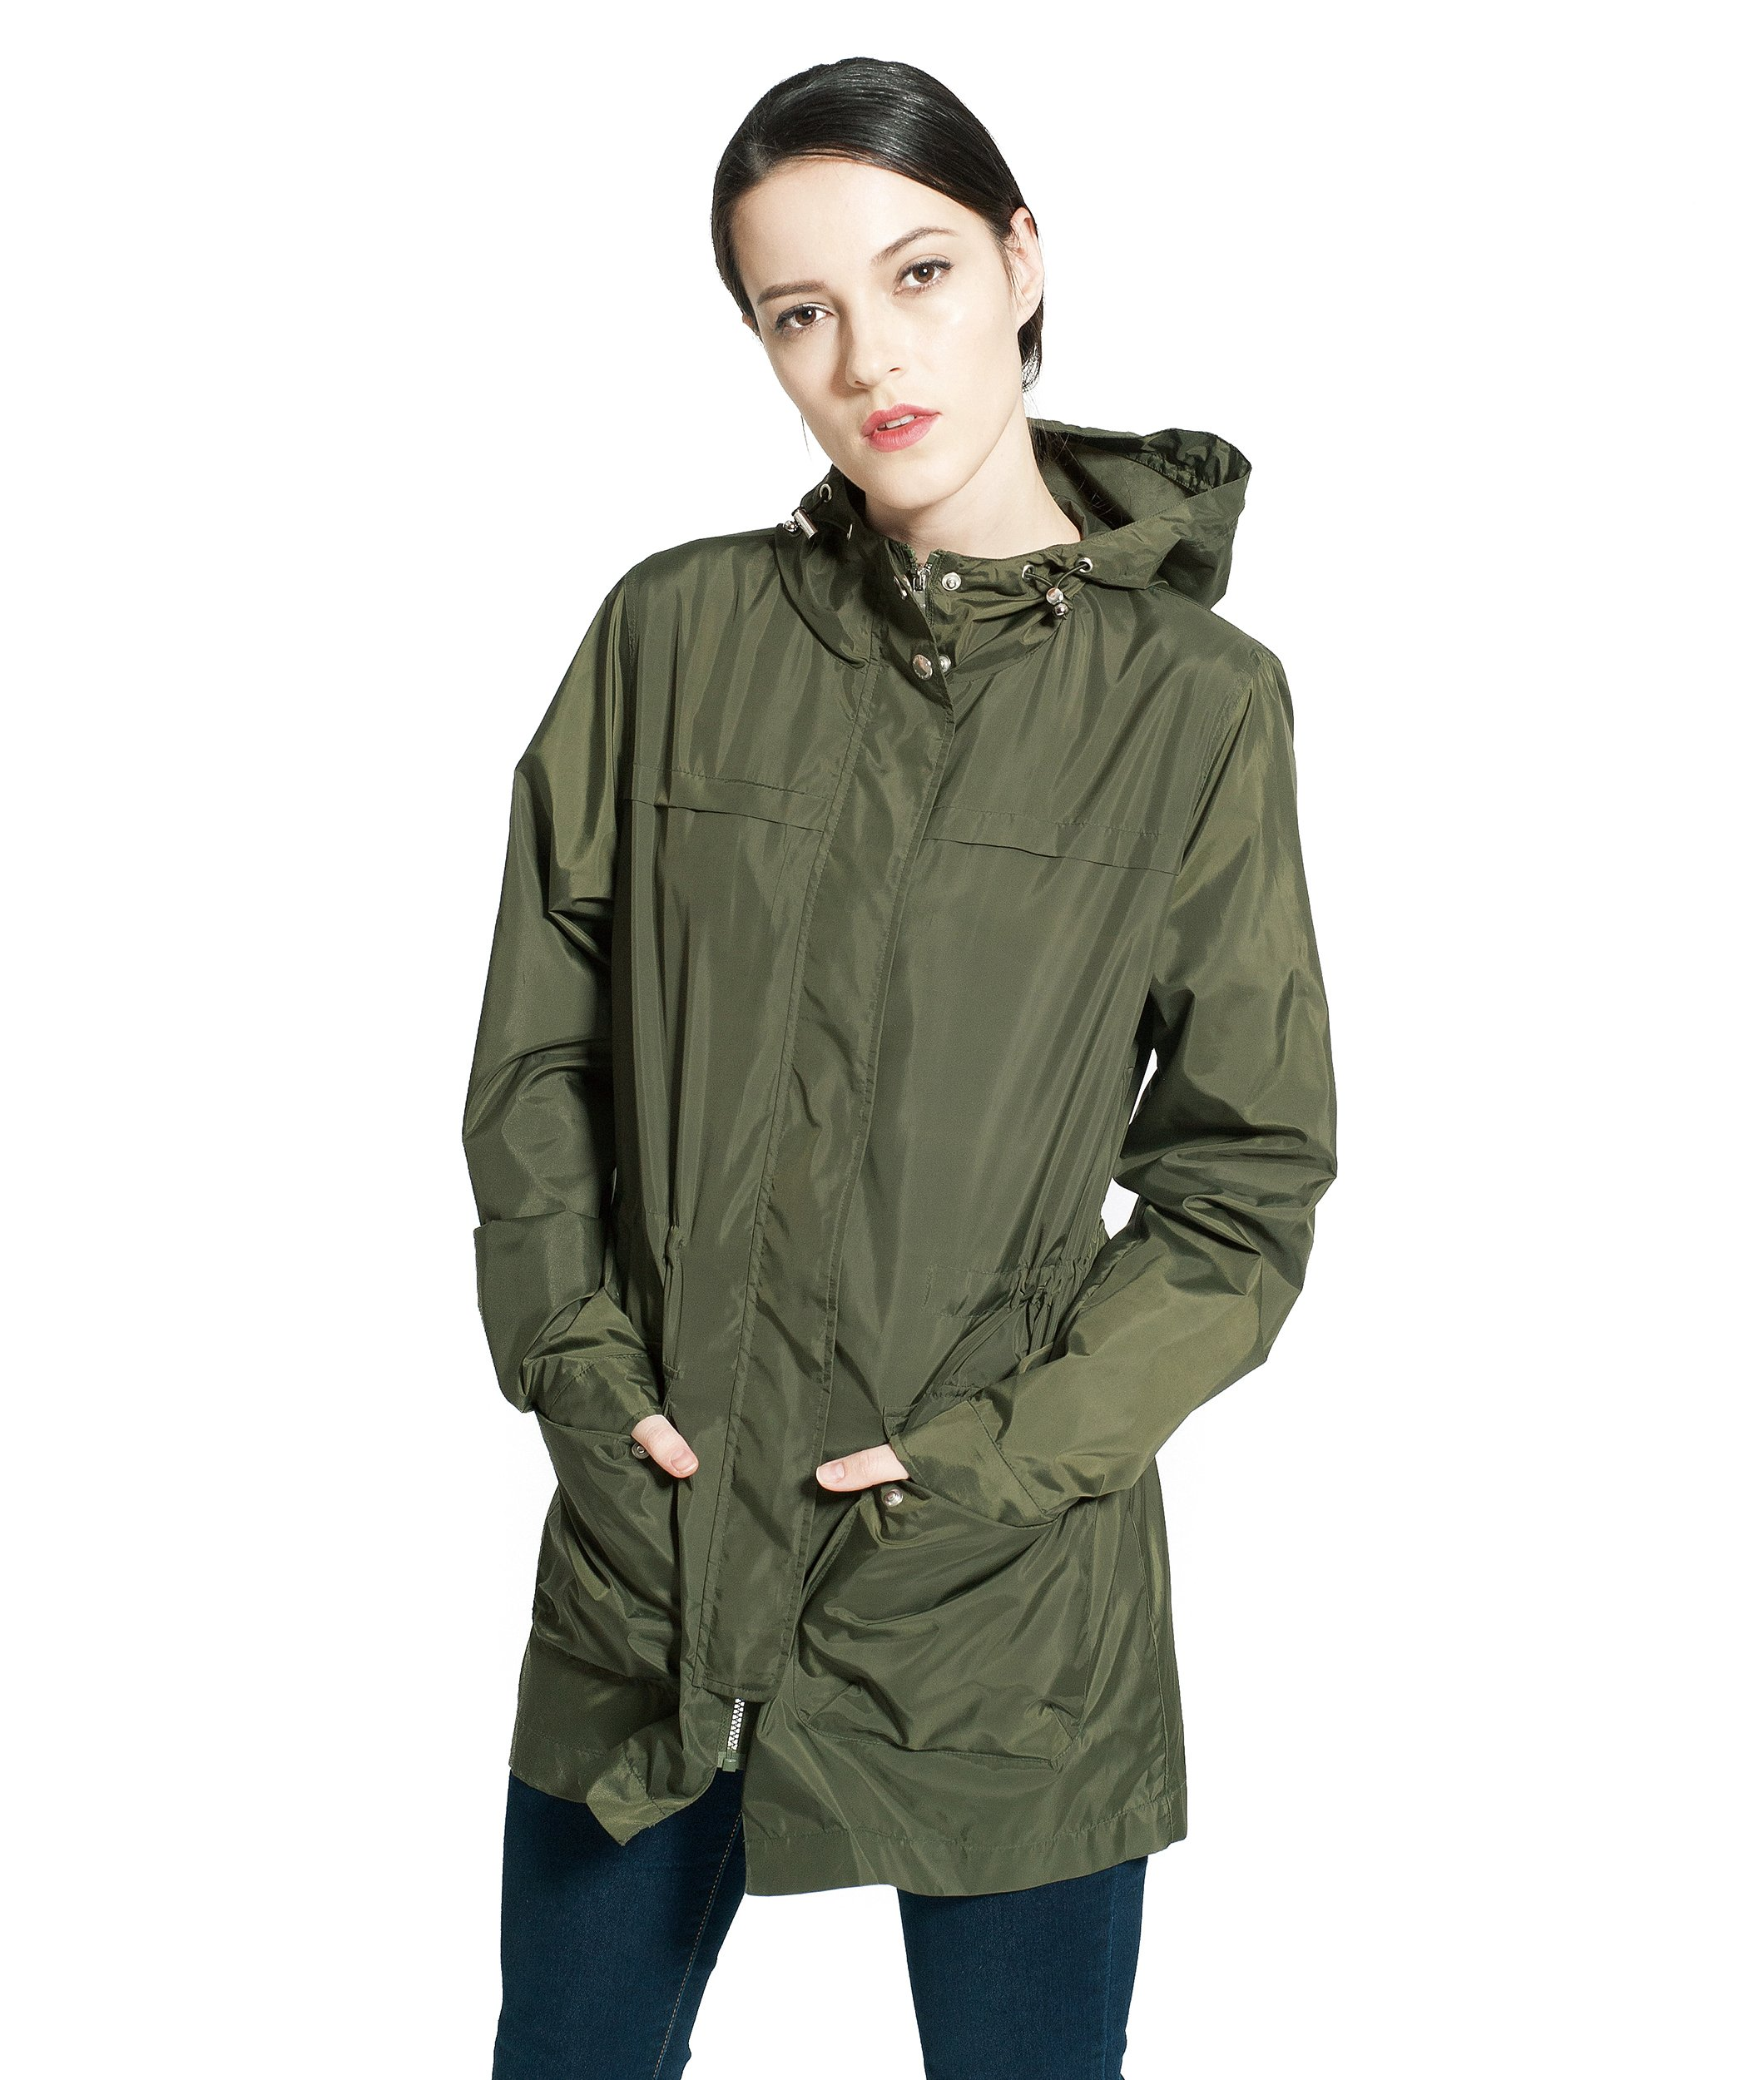 Rokka&Rolla Women's Lightweight Water-Resistant Active Outdoor Mid Hooded Trench Raincoat Windbreaker Jacket